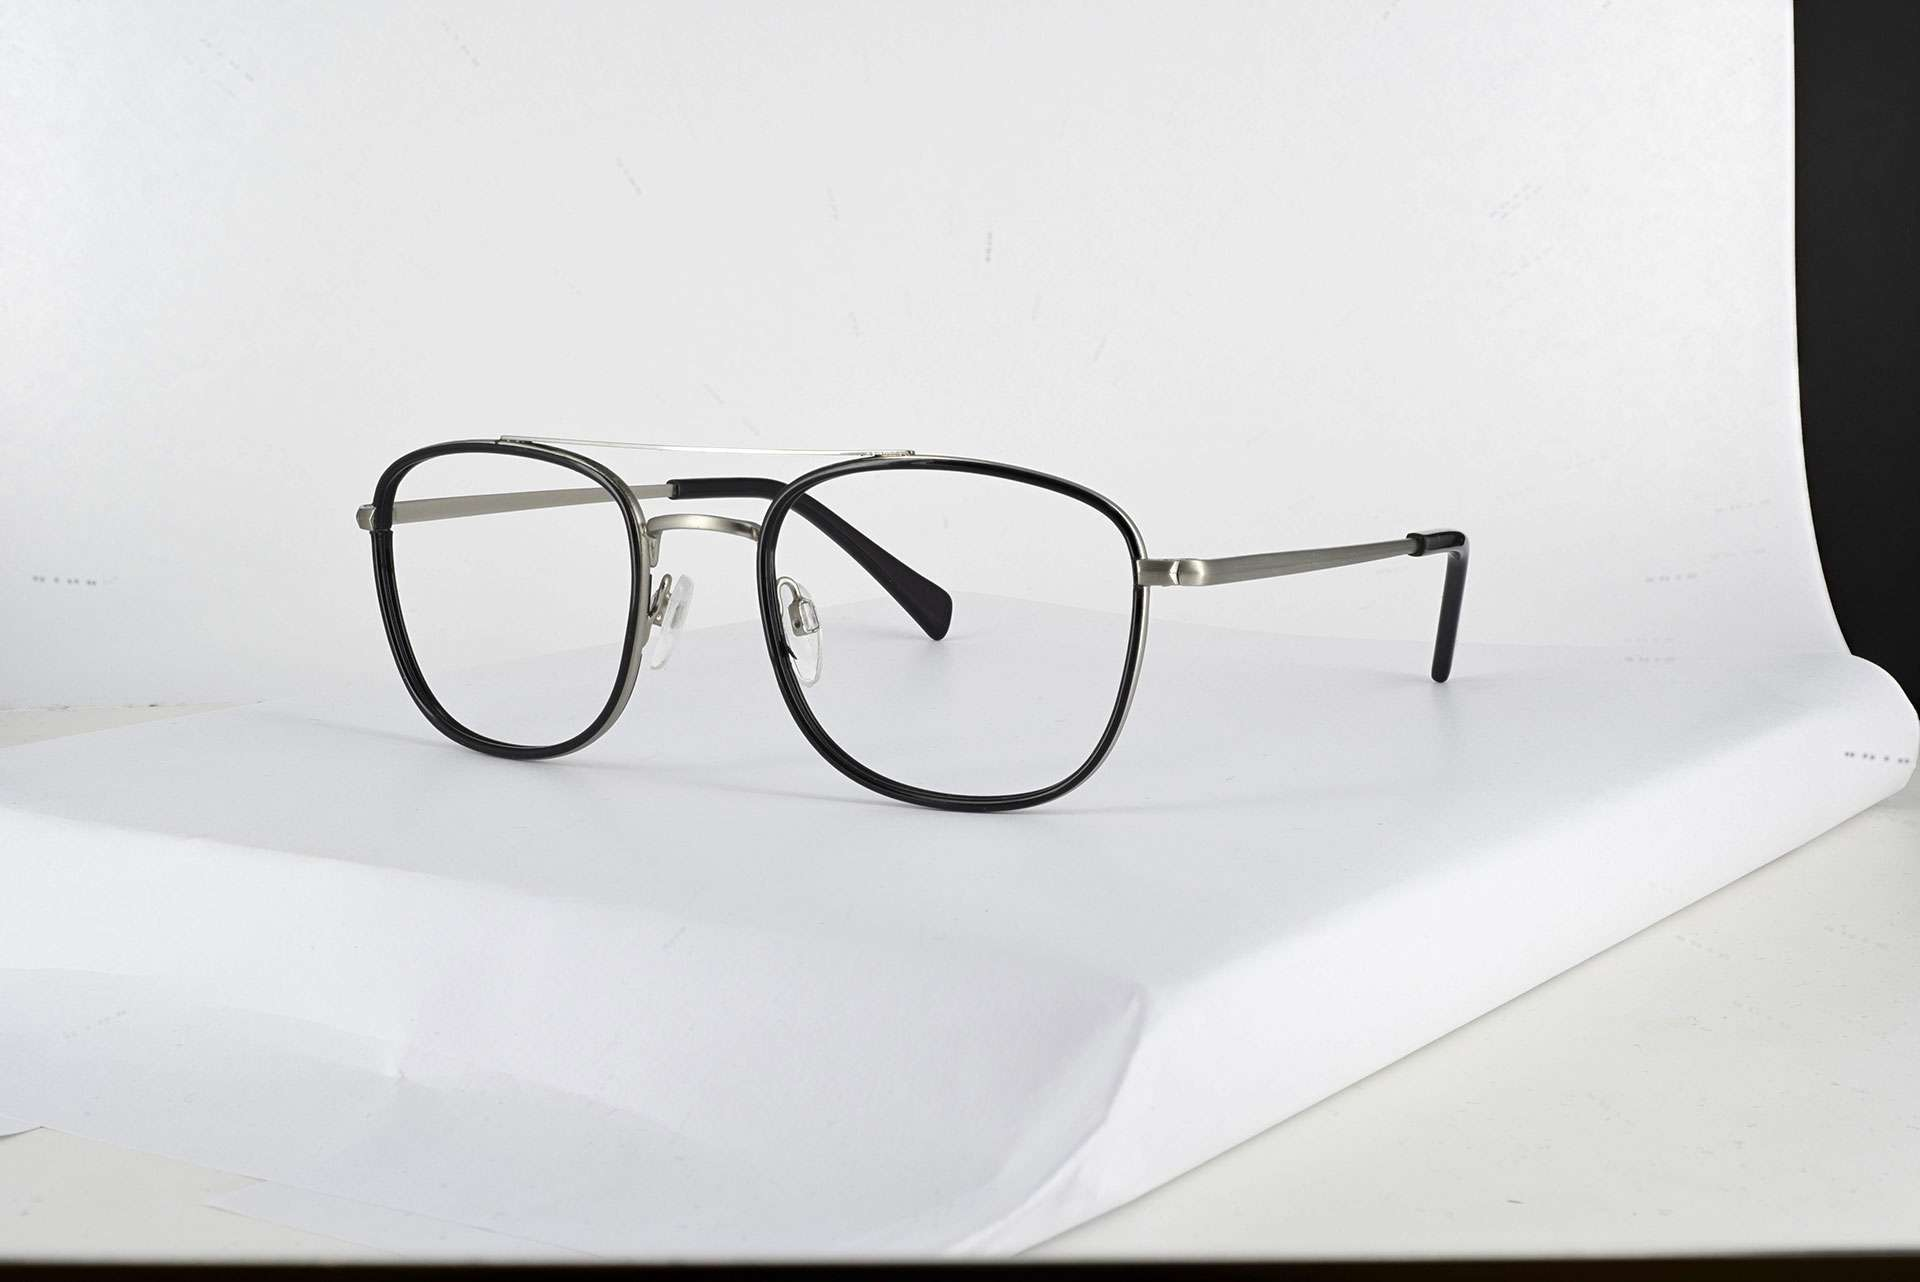 Ecommerce glasses retouching before